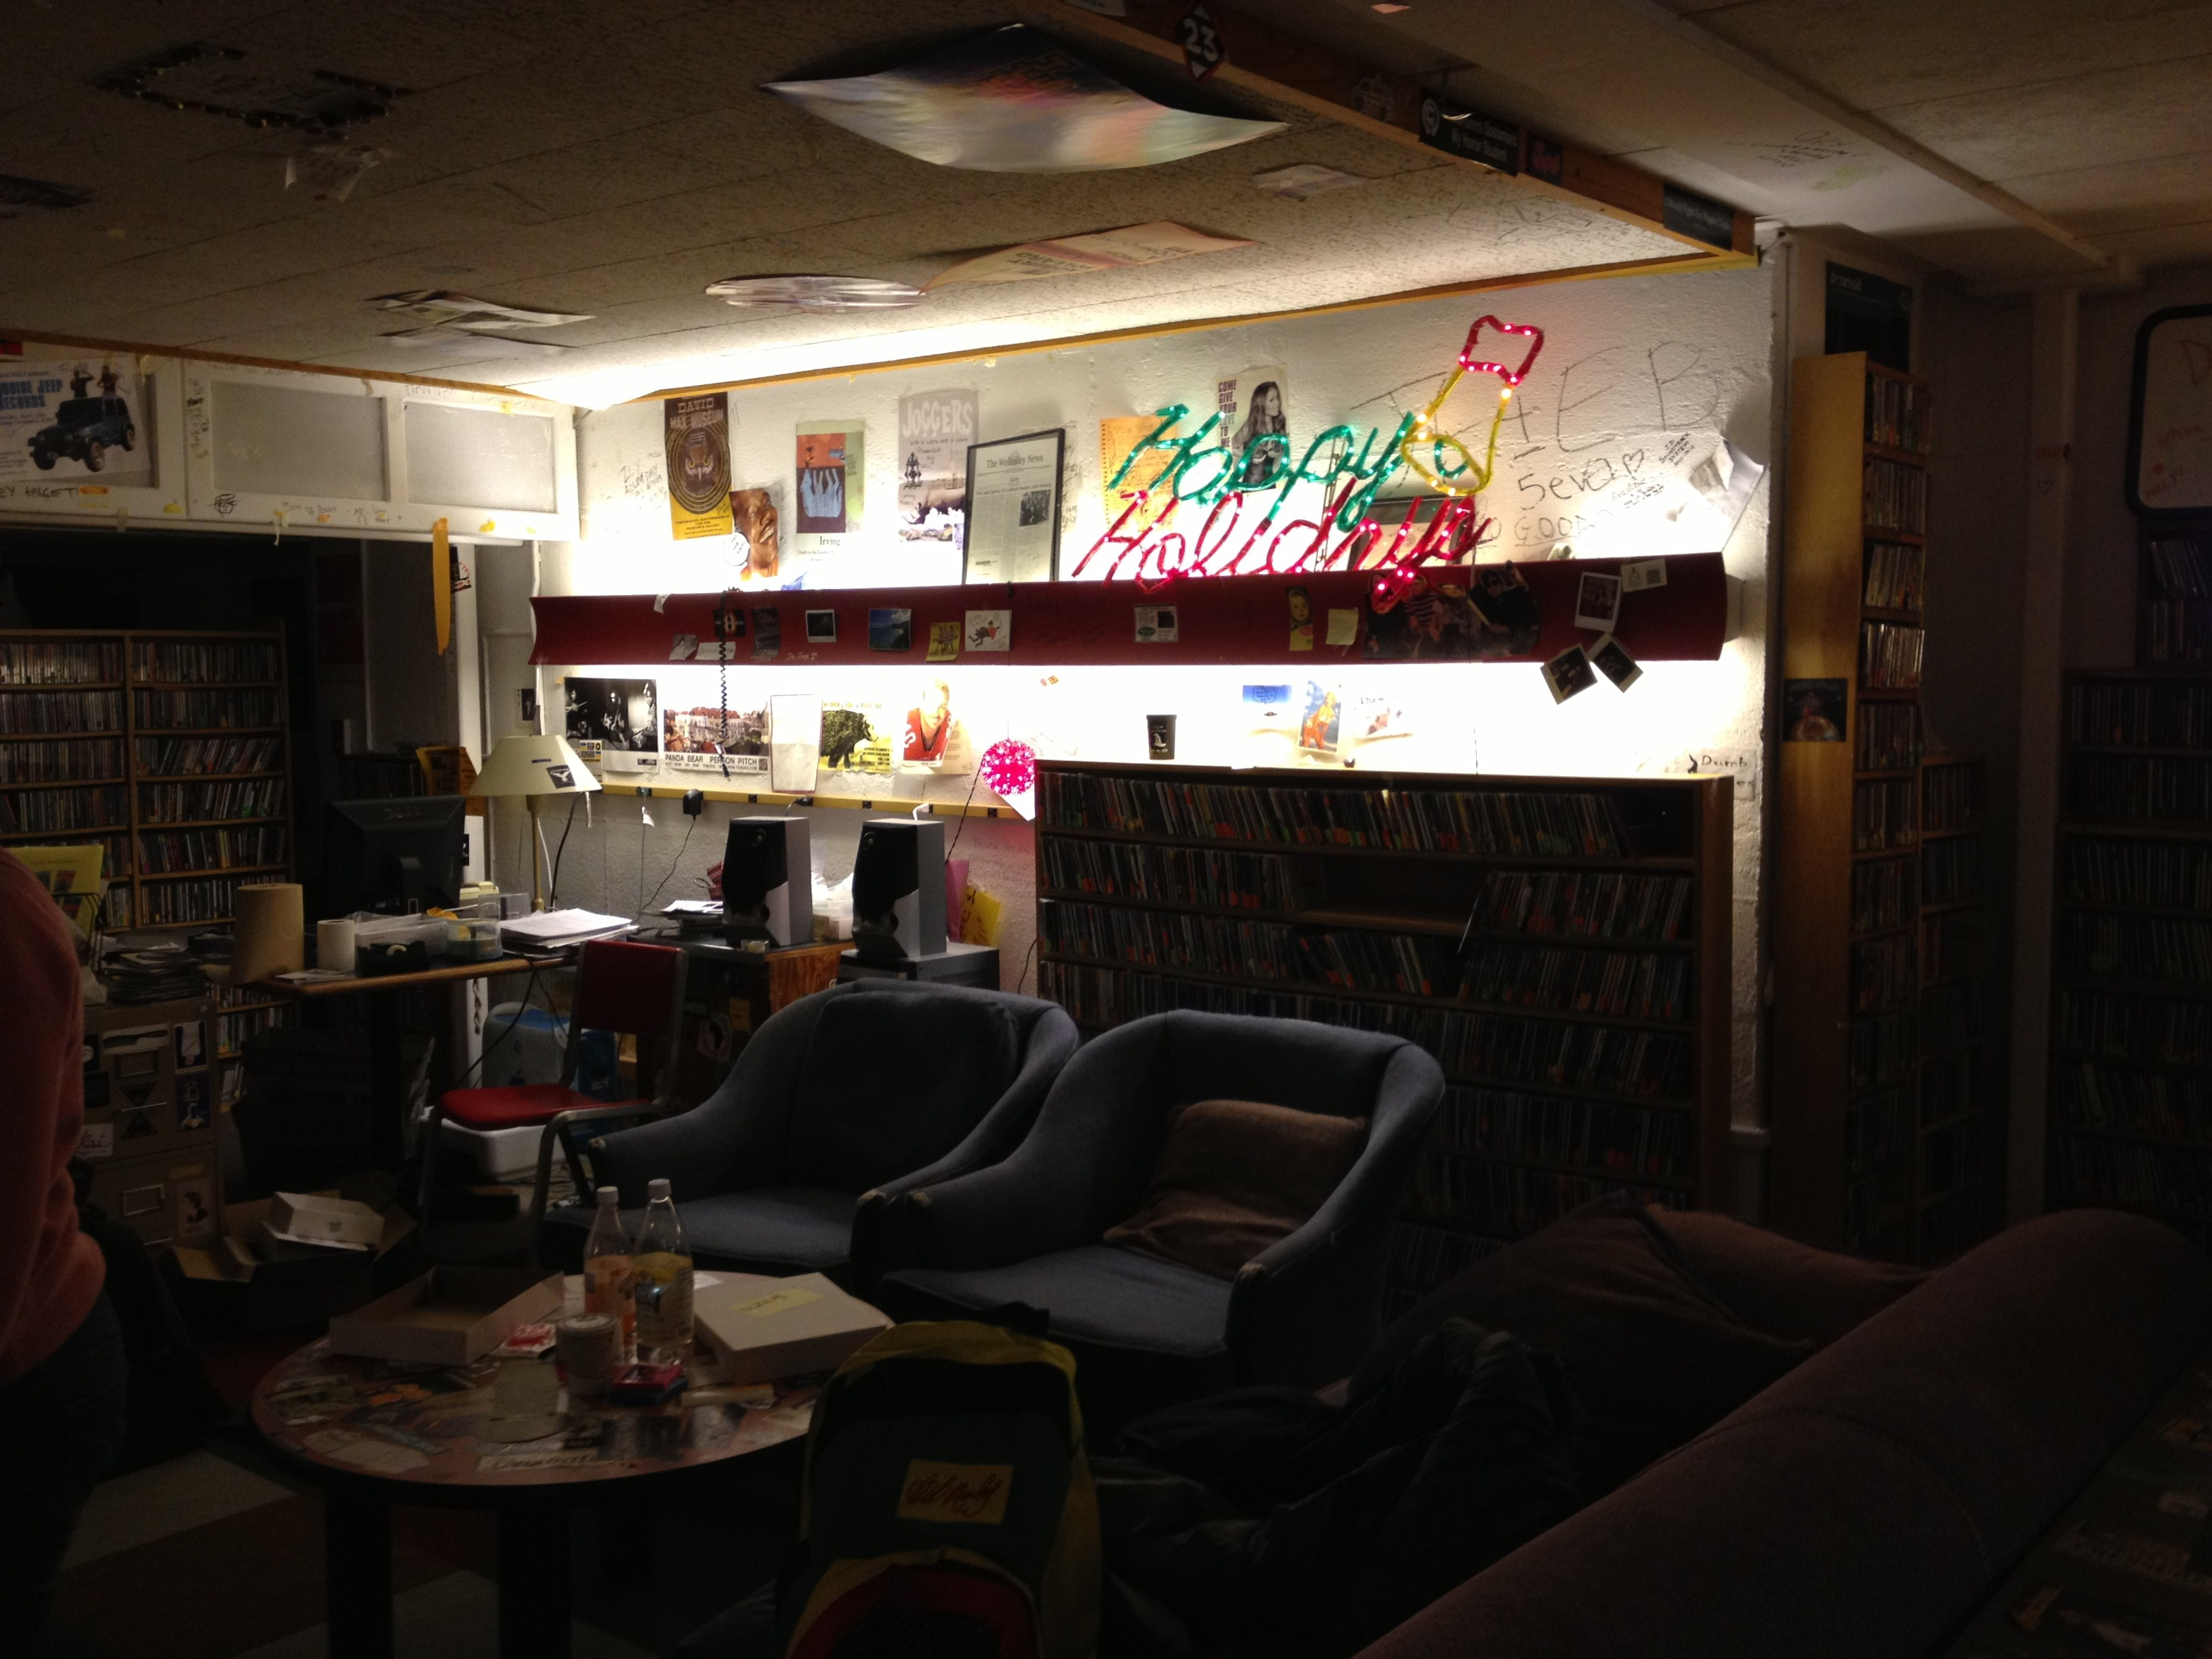 Living room at WZLY, Wellesley's radio station. Located in the basement of Billings Hall.